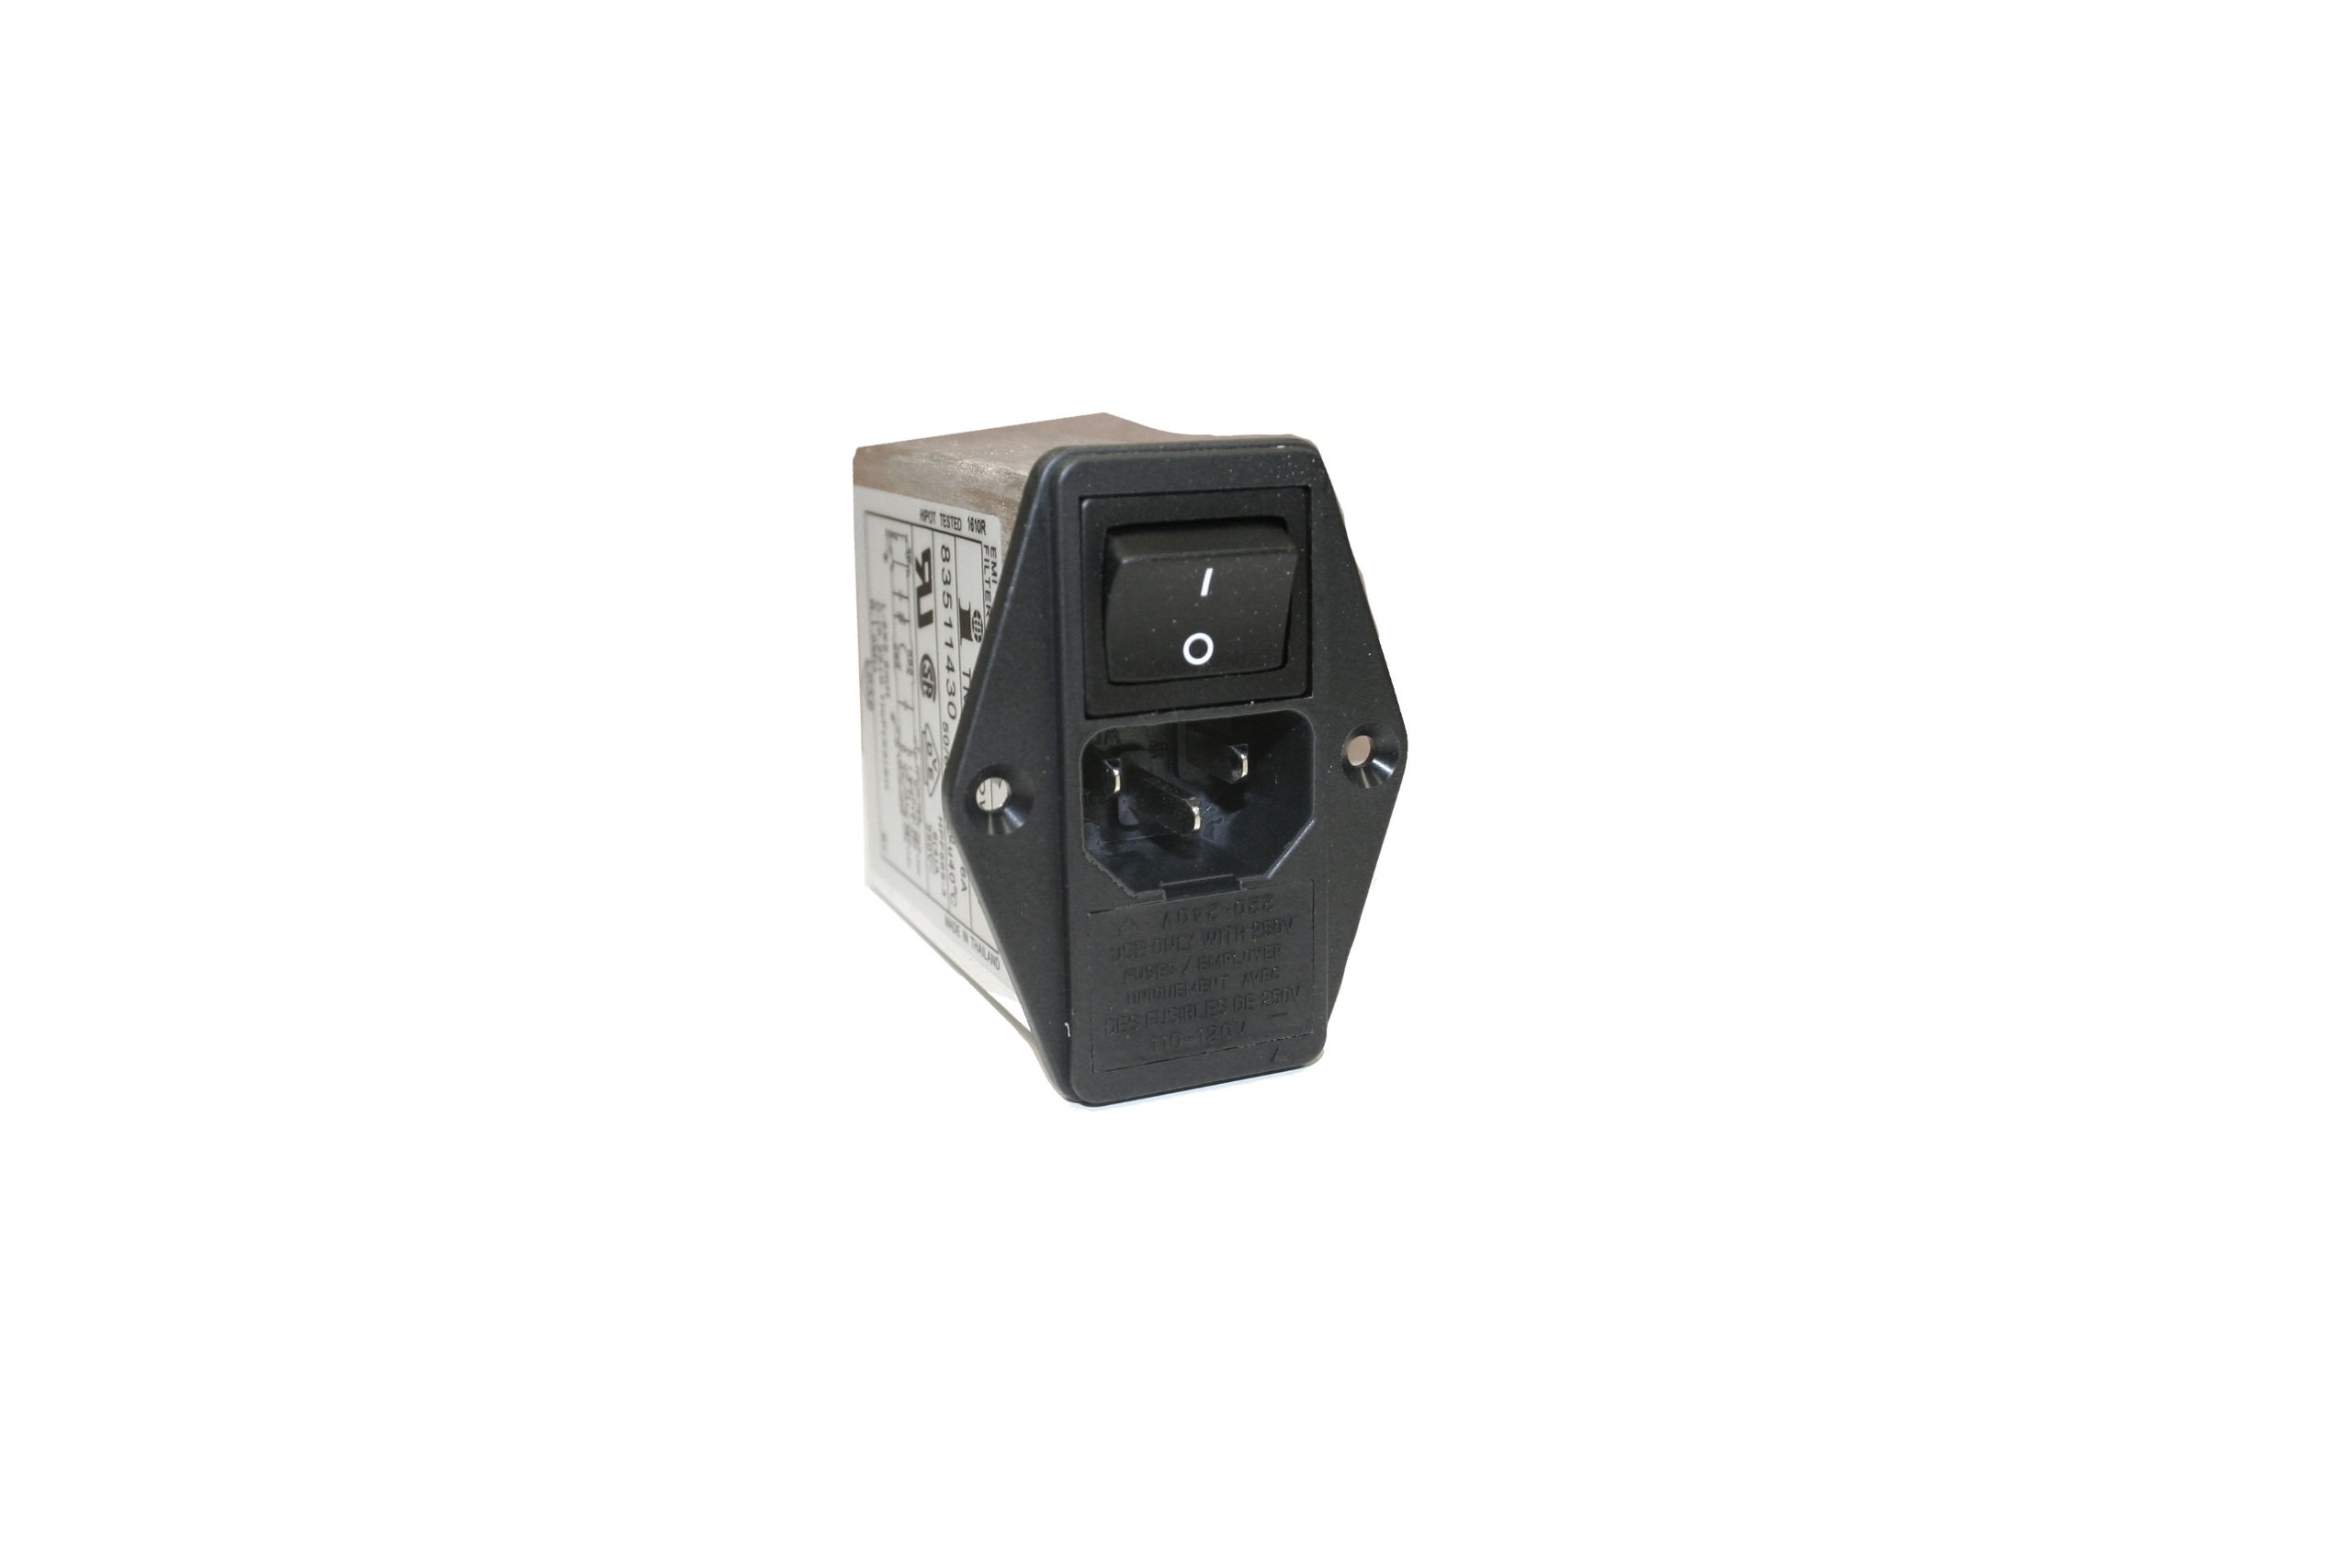 Interpower 83511430 Five Function Double Fused Medical Grade Module, C14 Inlet, Switch, Double Fused, Voltage Selector, Filter, 6A Current Rating, 250VAC Voltage Rating